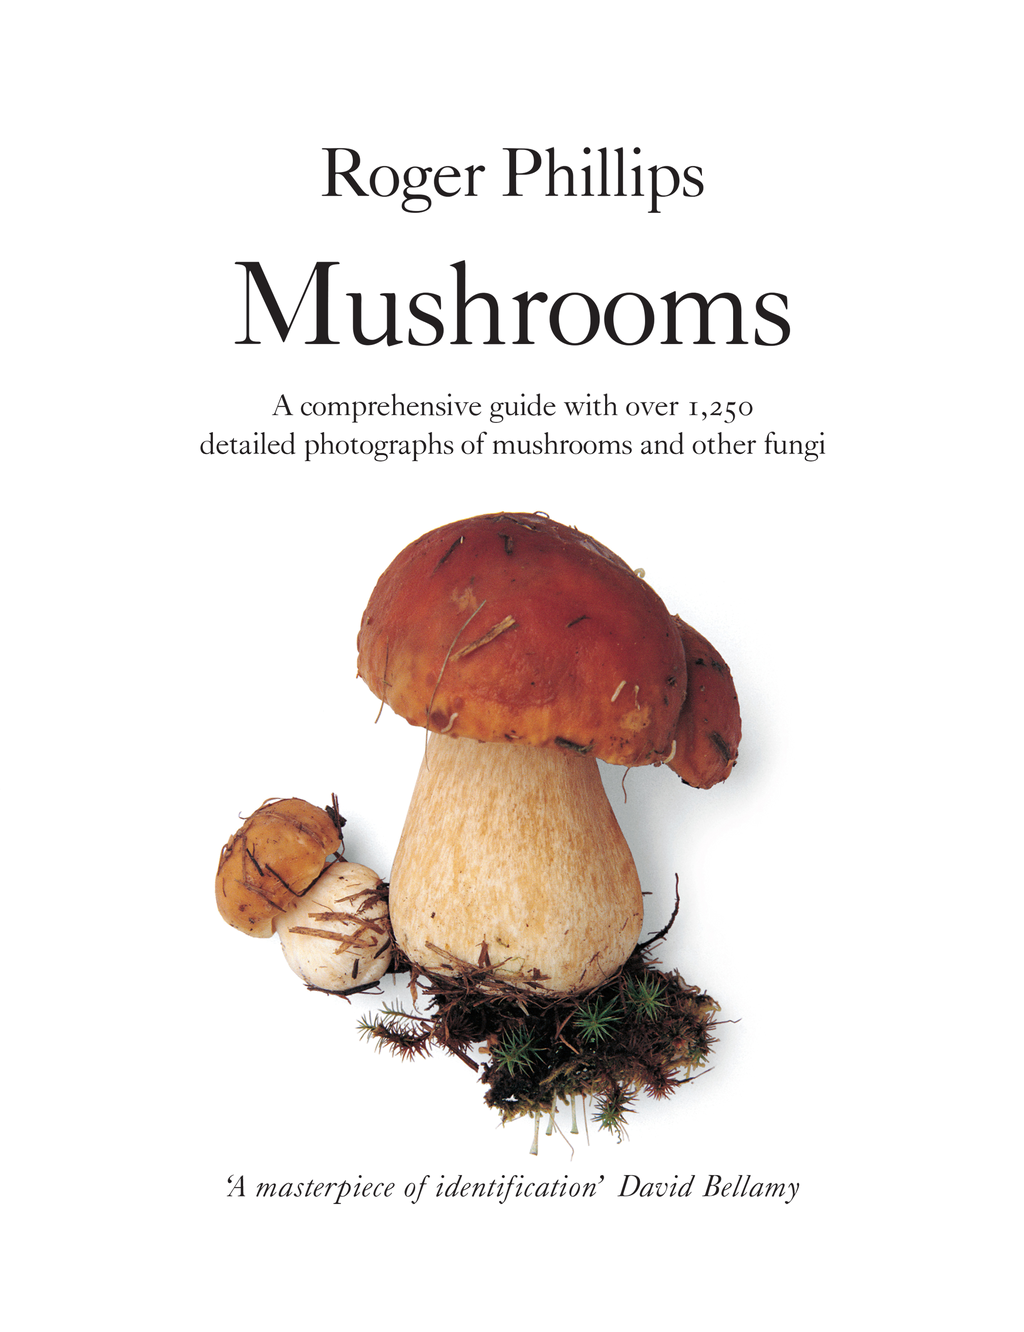 Mushrooms A comprehensive guide to mushroom identification